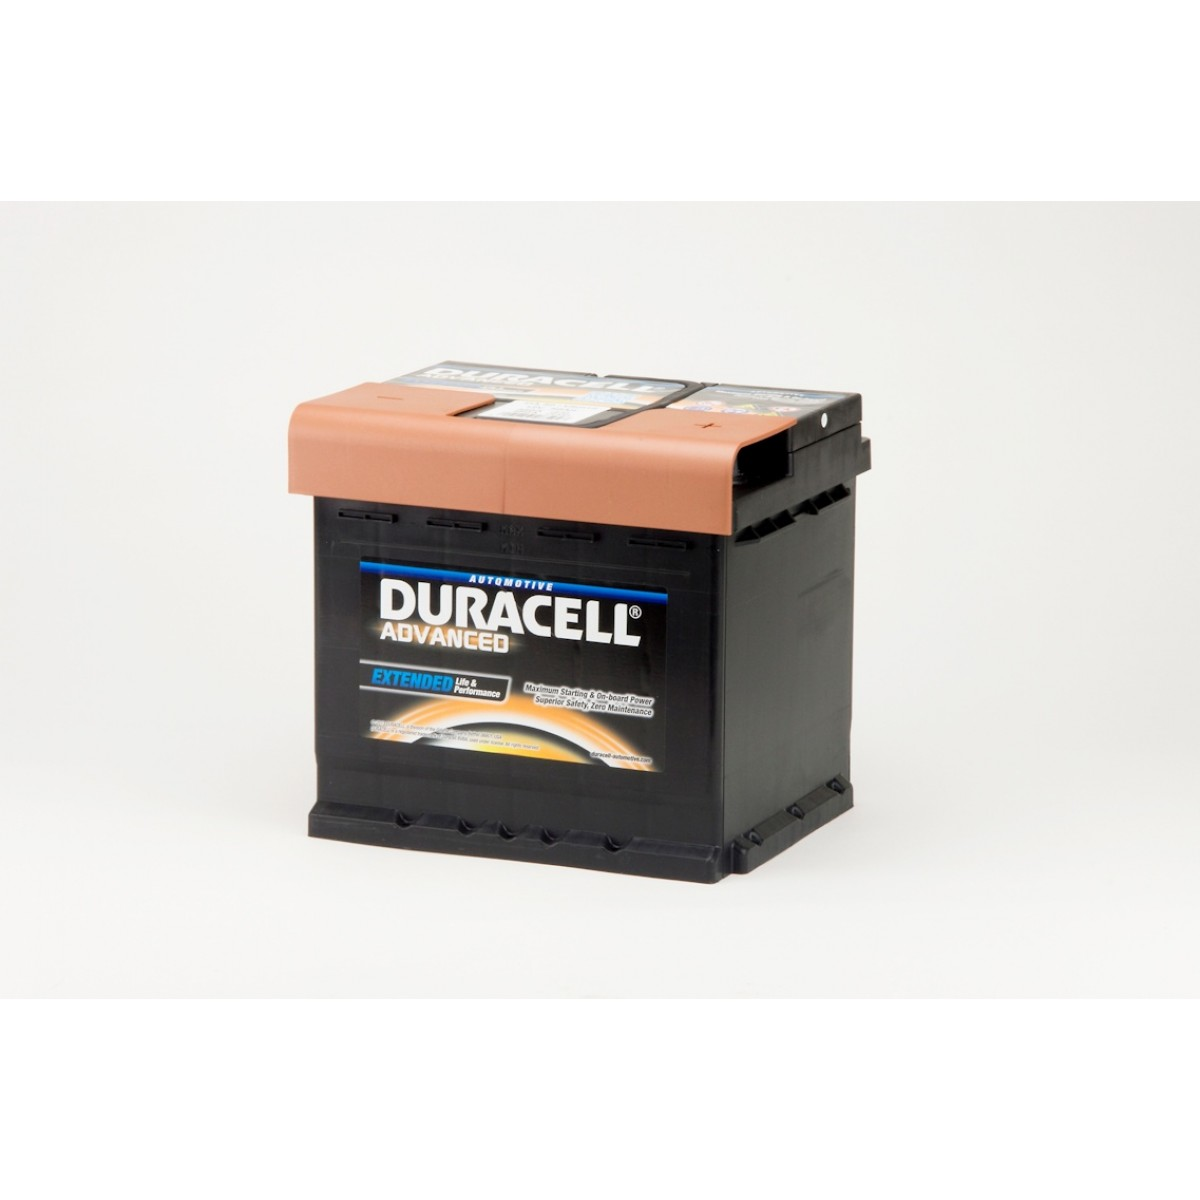 Voltage Auto Accu Auto Accu Duracell Advanced Da 50 12v 50ah